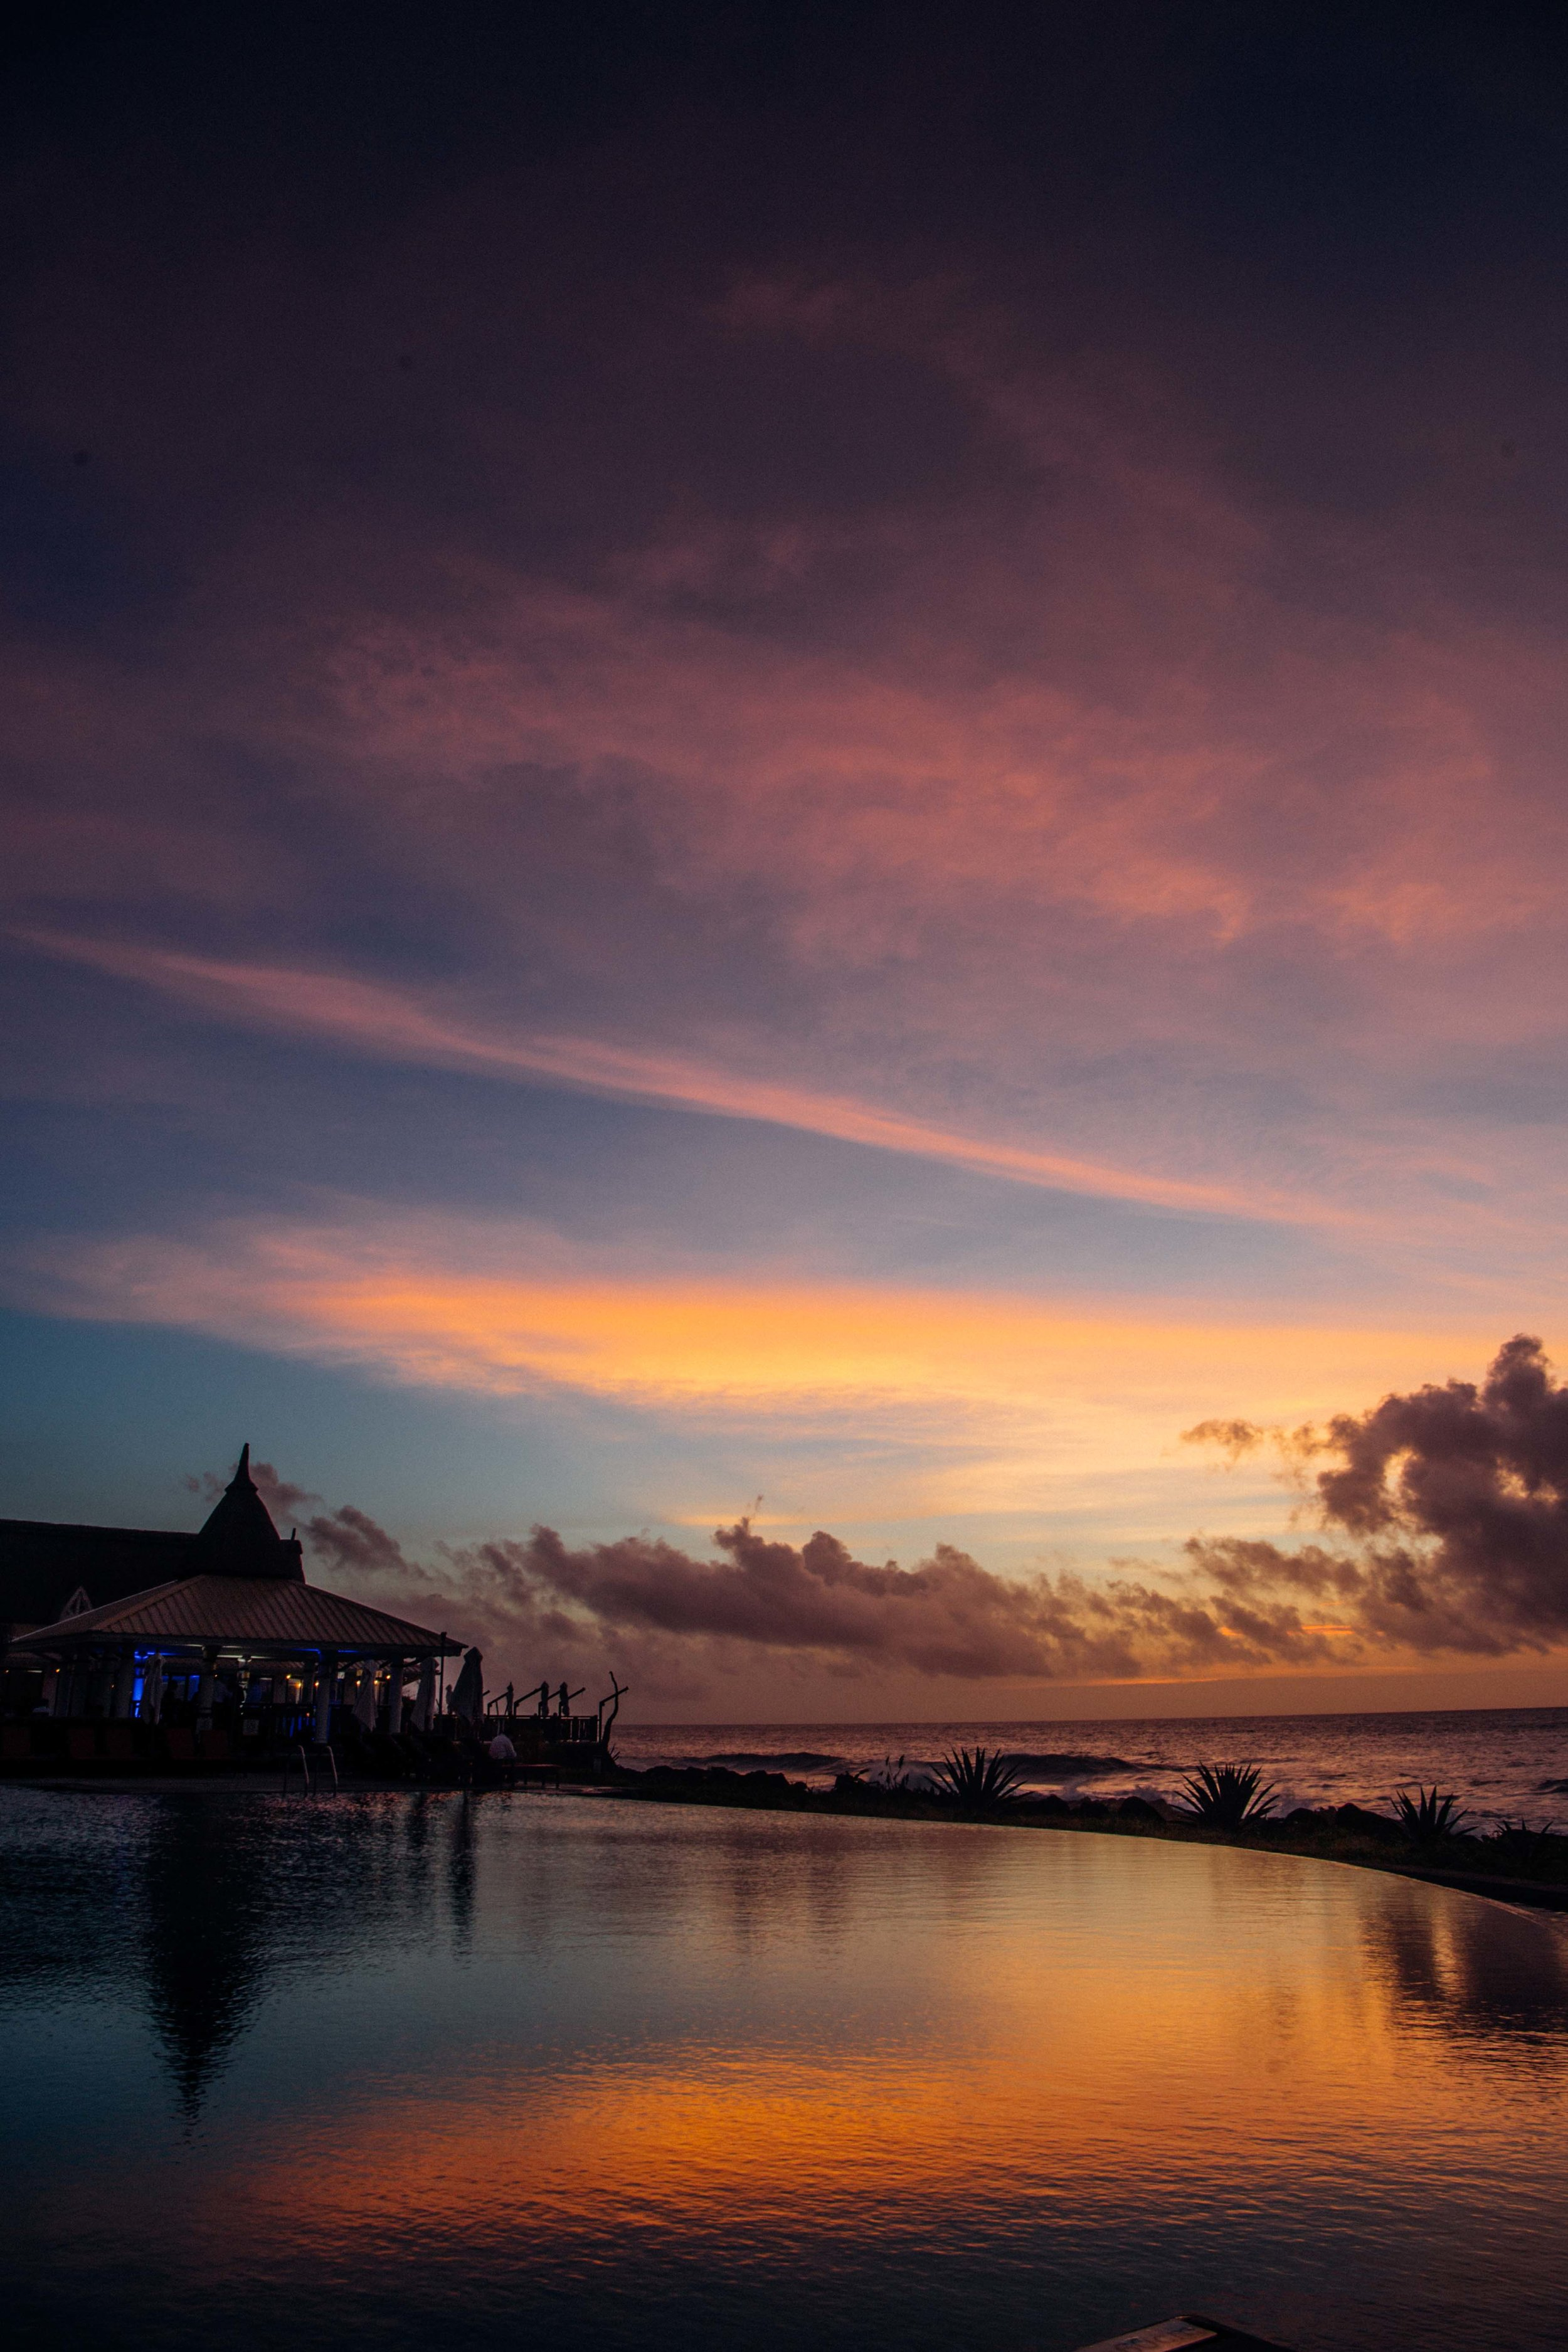 Incredible sunset over the Zen Pool in Club Med Albion.